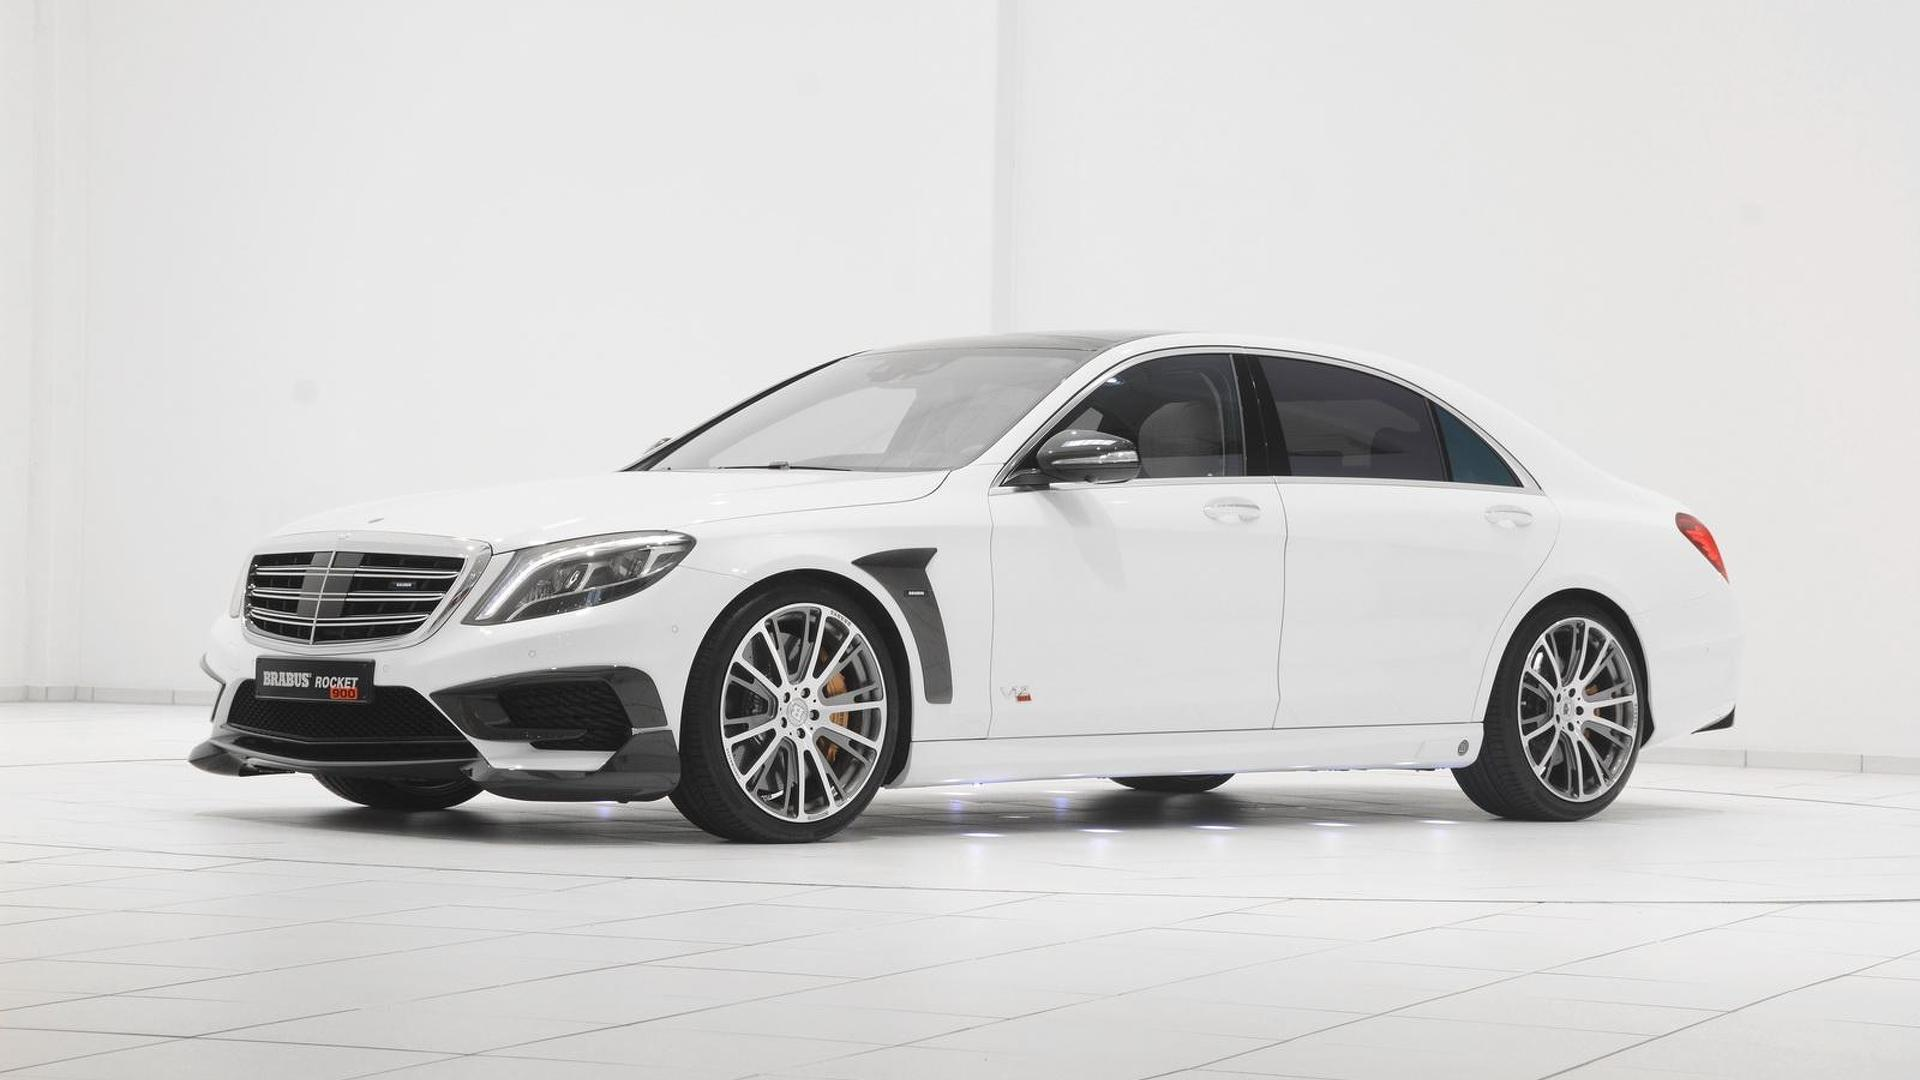 Brabus Rocket 900 is a heavily tuned MercedesBenz S65 AMG with